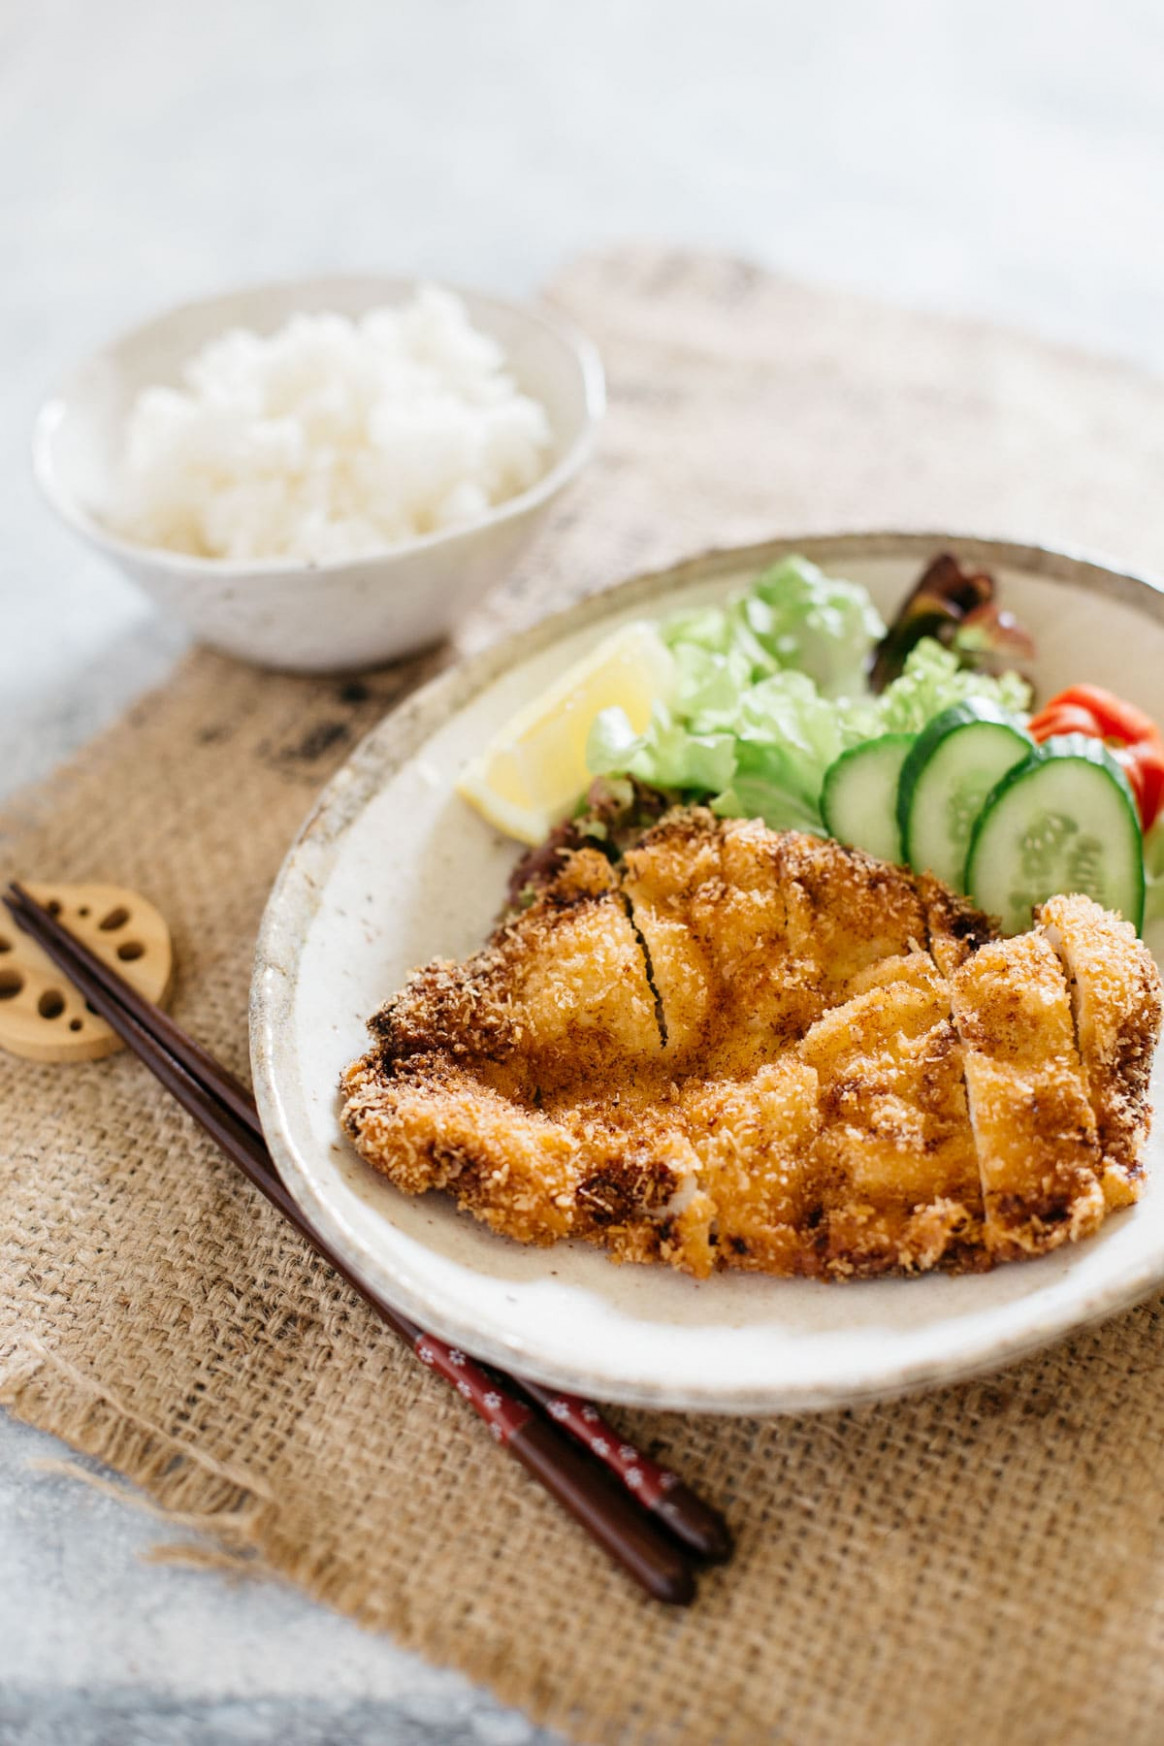 Chicken Katsu (shio koji marinated) | Chopstick Chronicles - recipes using chicken breast